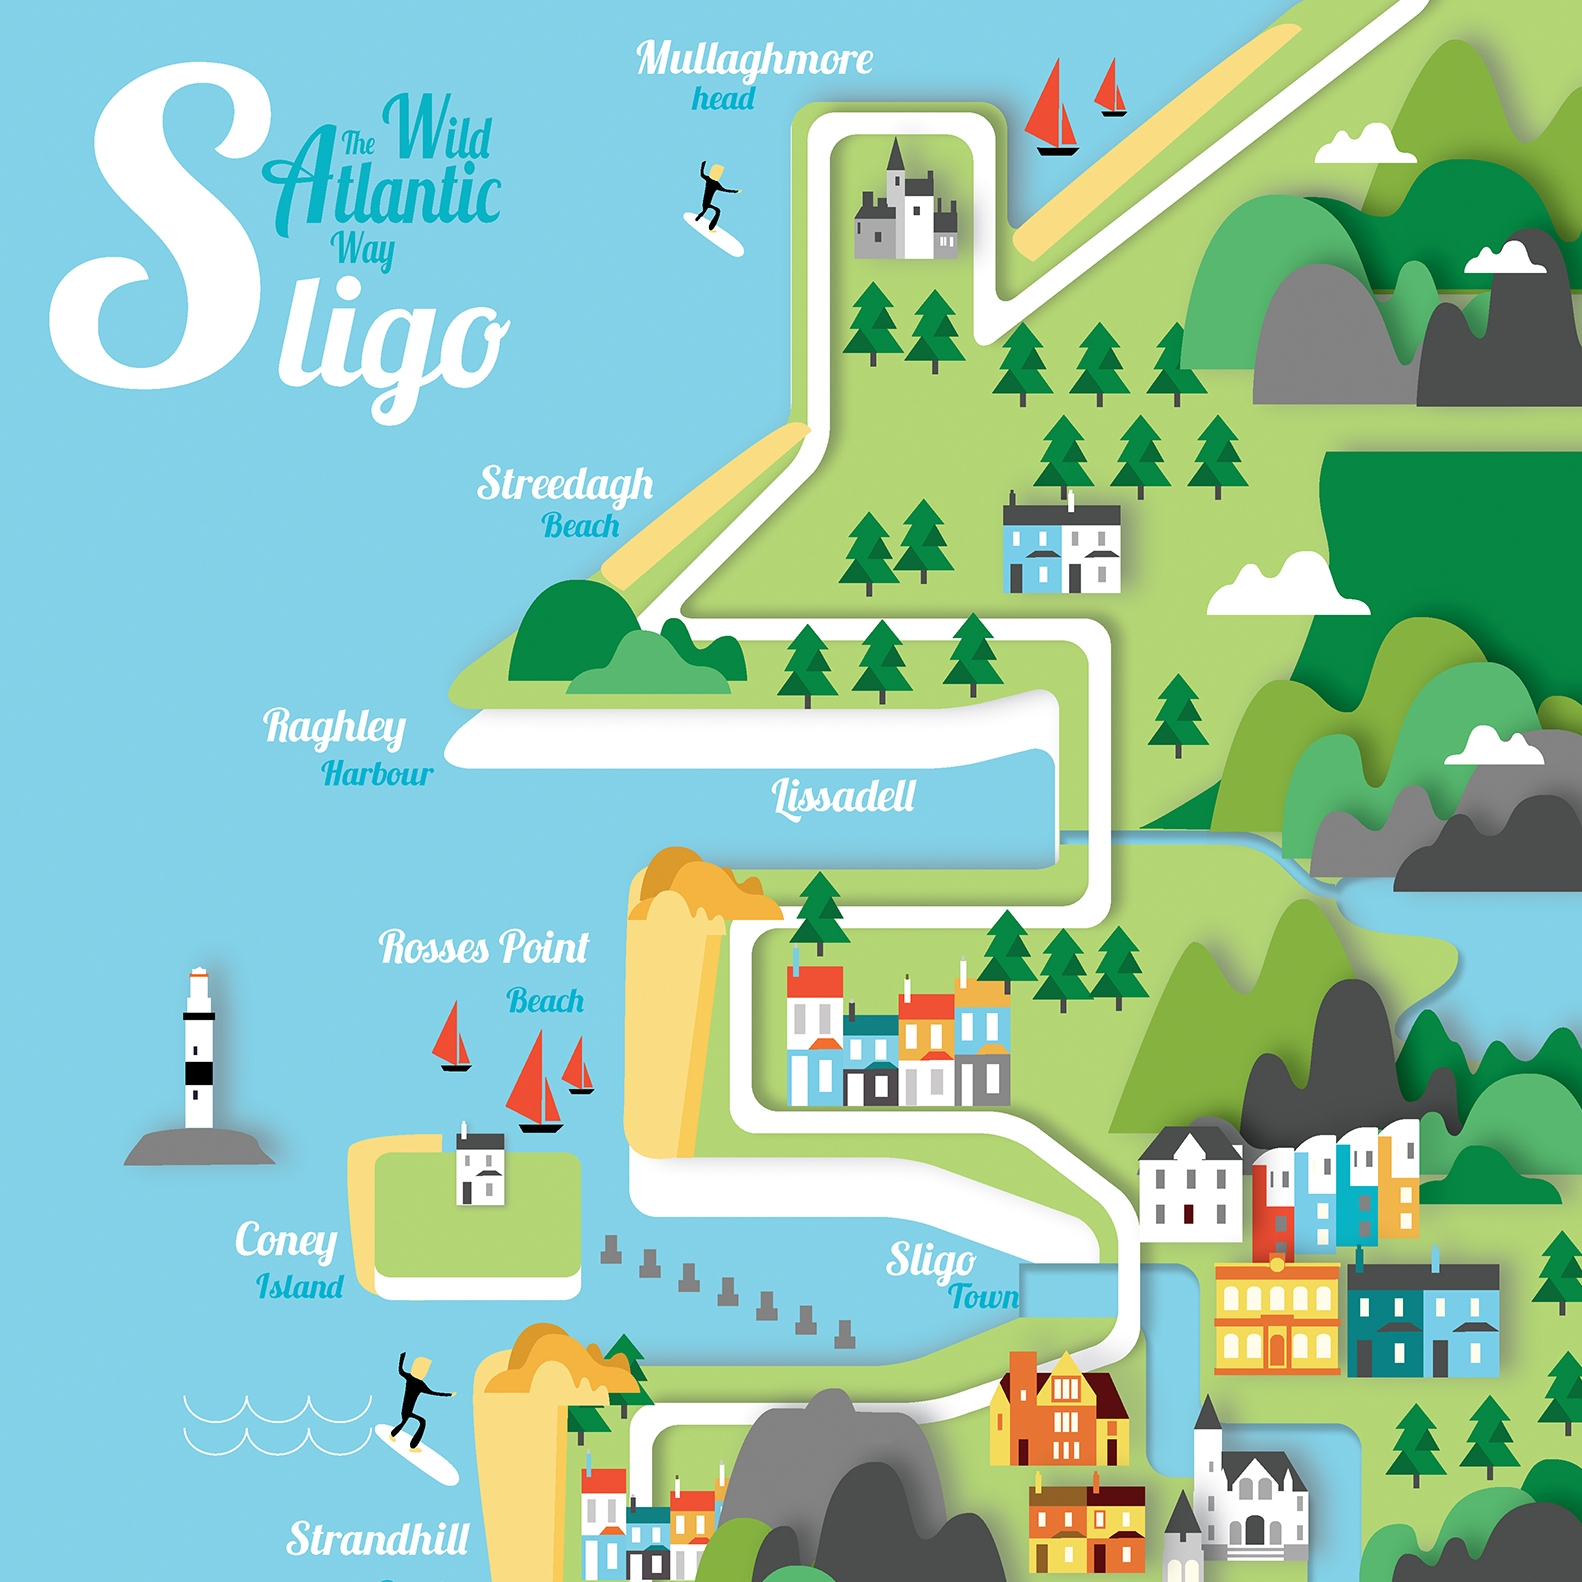 Reddin designs illustration sligo map.jpg